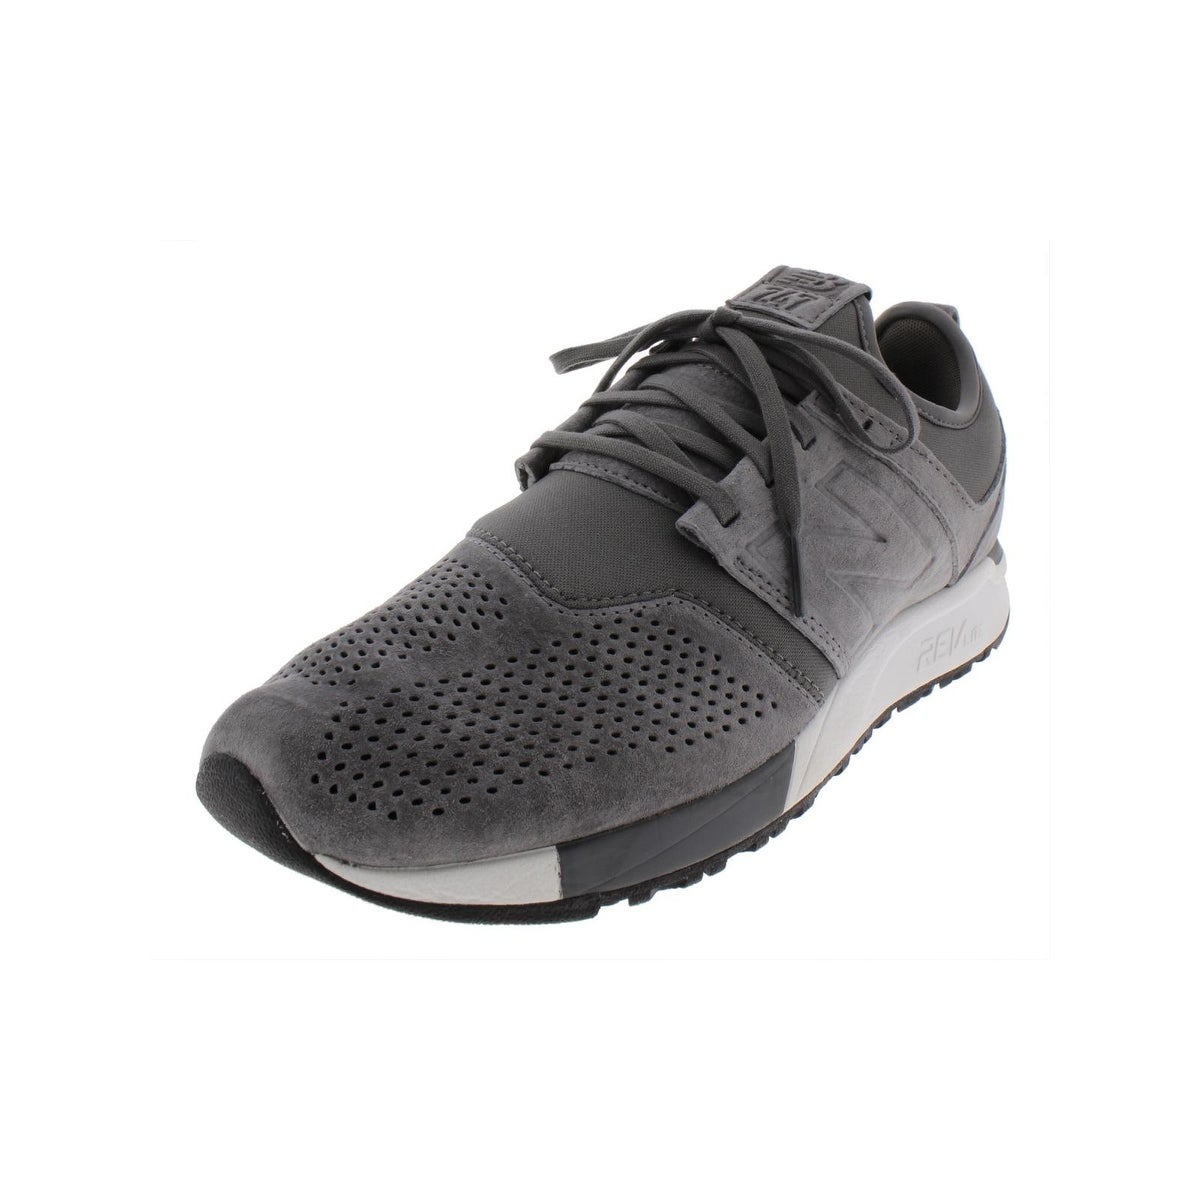 5c3133c0ba New Balance Men's Shoes | Find Great Shoes Deals Shopping at Overstock